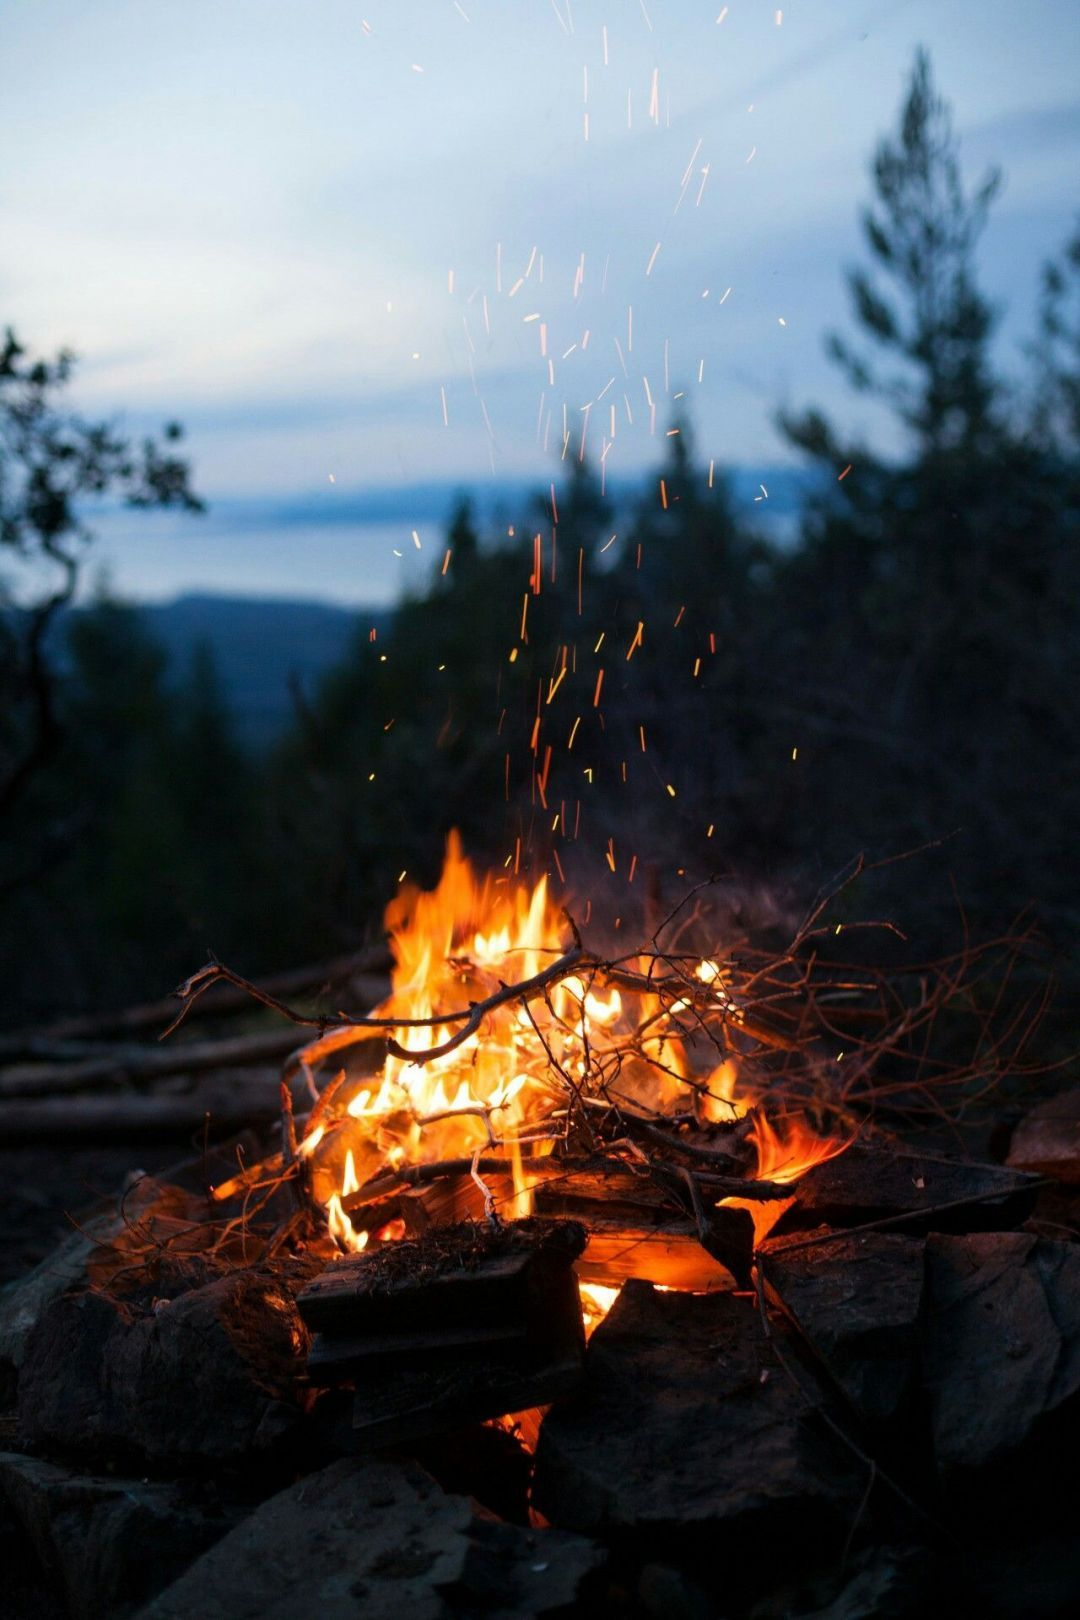 Fire Android Iphone Desktop Hd Backgrounds Wallpapers 1080p 4k 112780 Hdwallpapers Android Fire Photography Camping Photography Camping Aesthetic